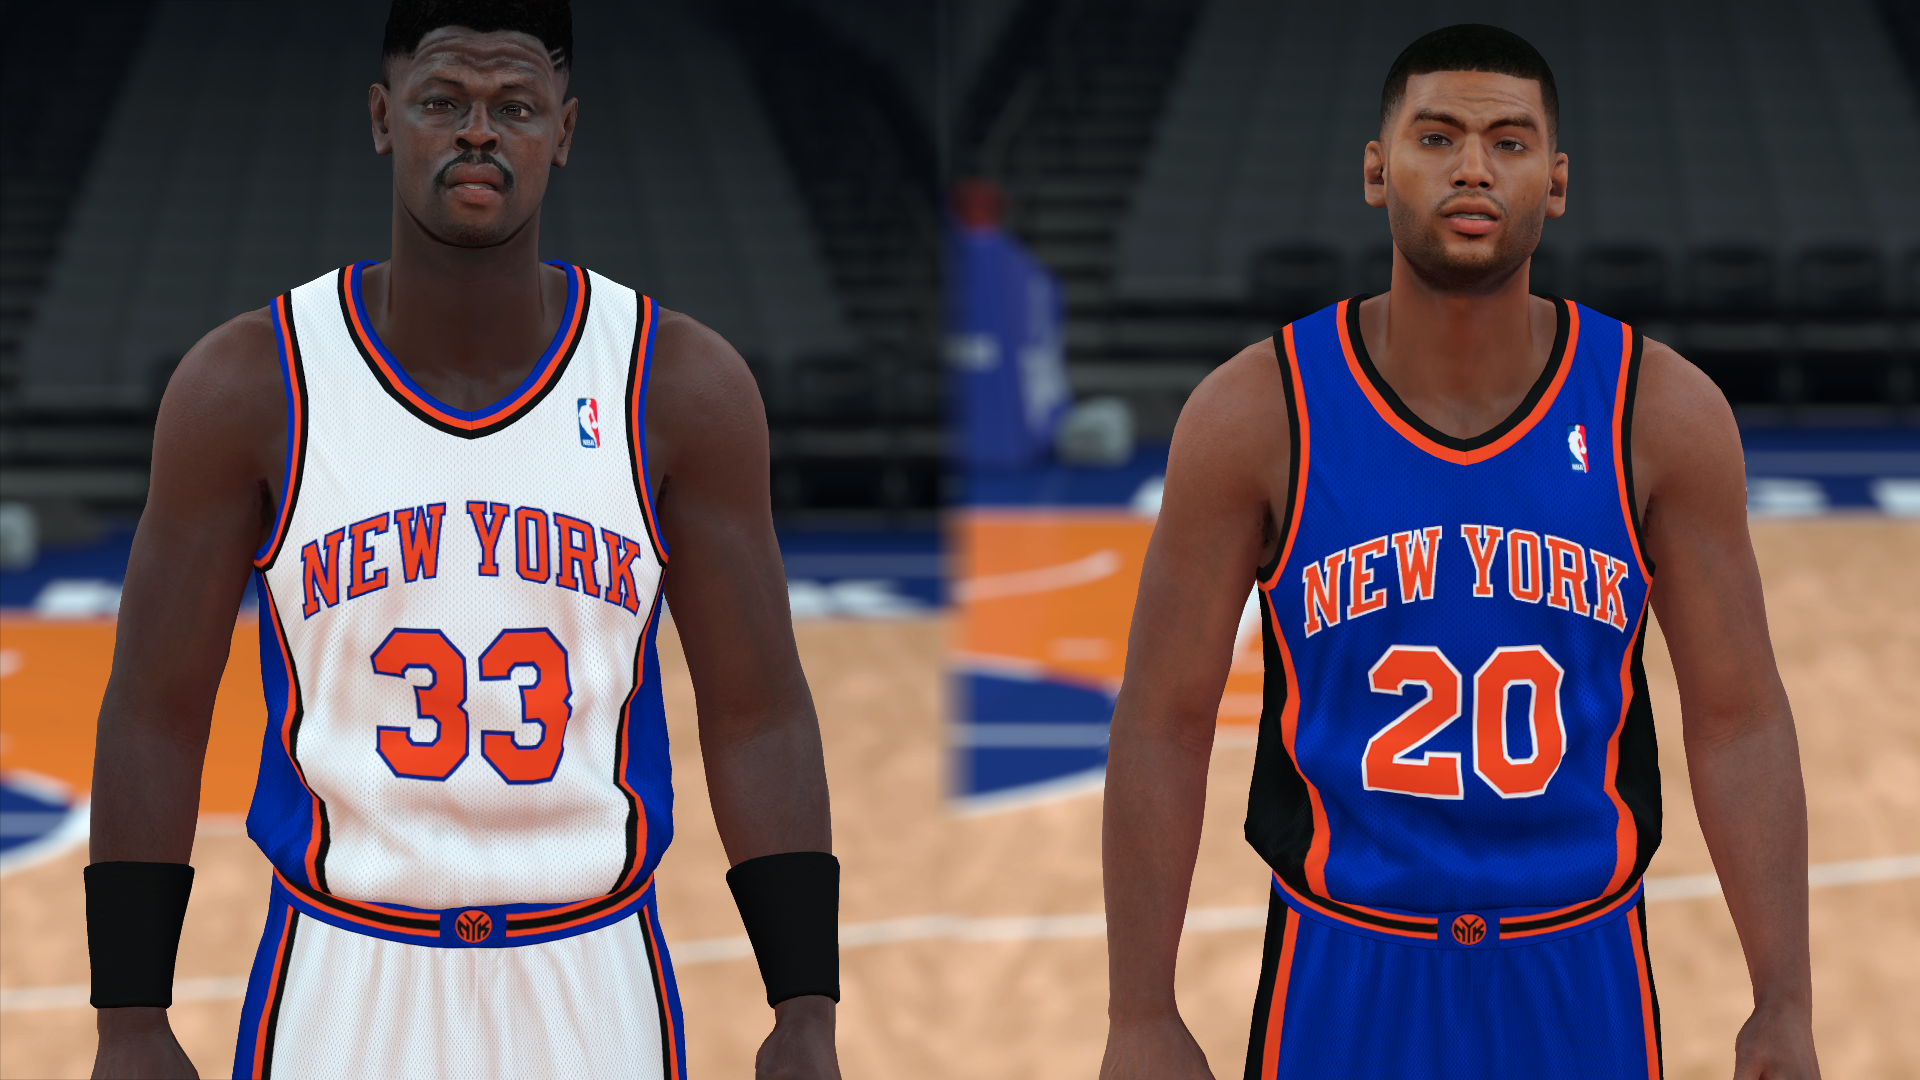 936f63636 NLSC Forum • Downloads - 1998-1999 Knicks Jerseys - PeacemanNOT